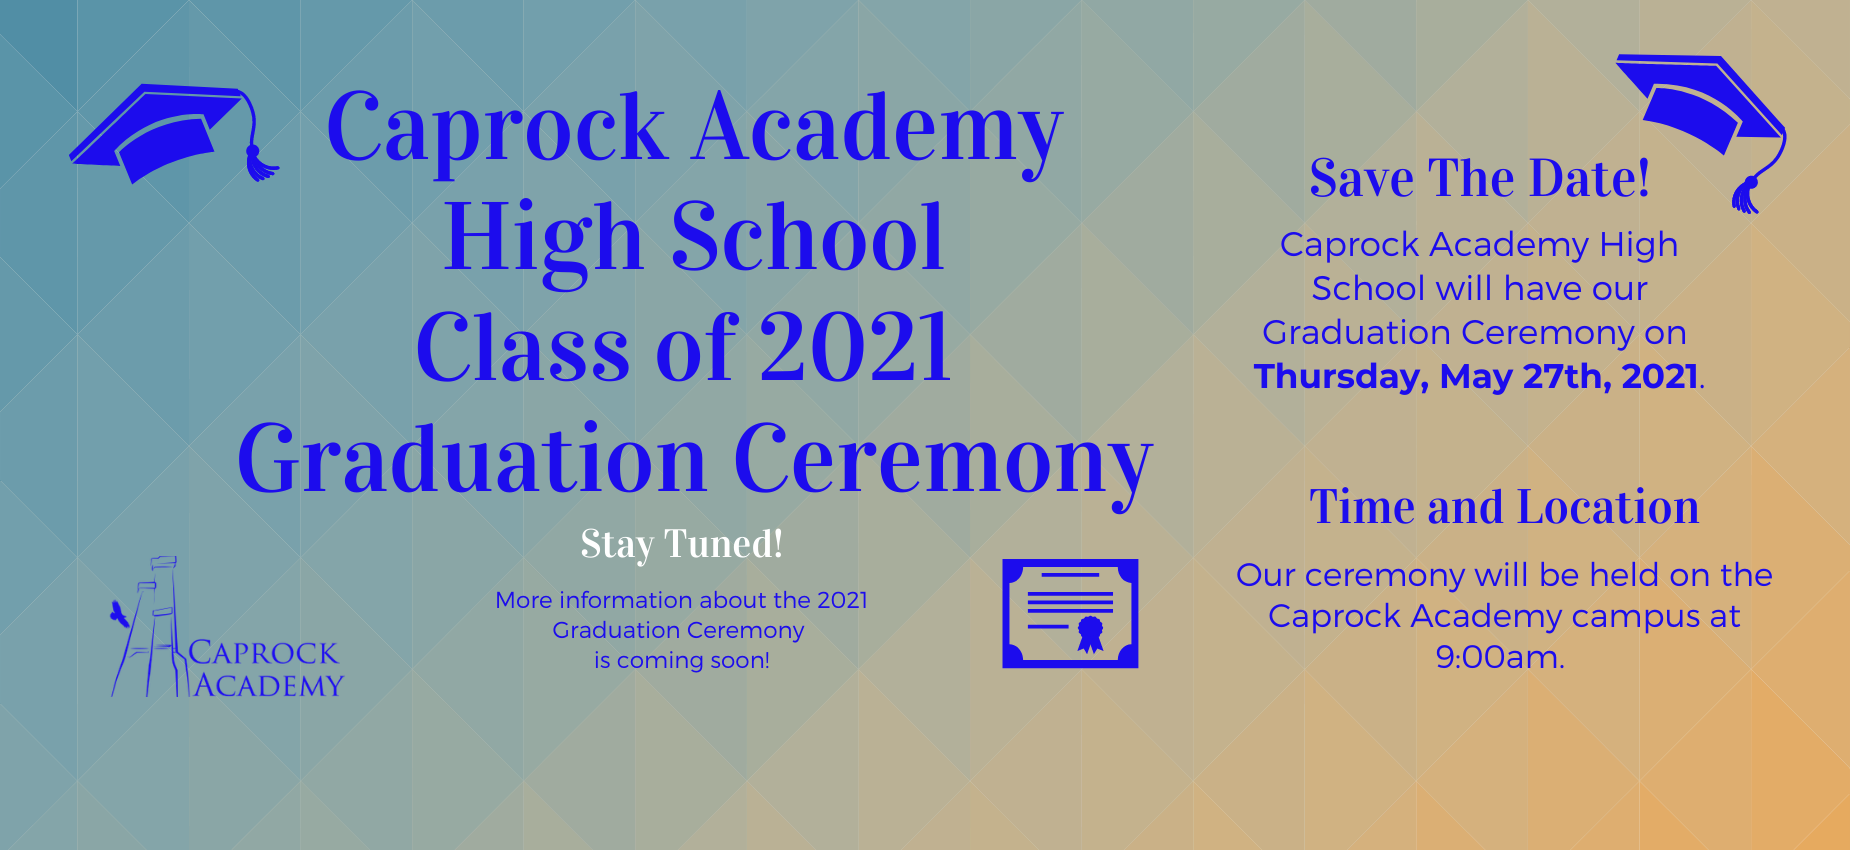 2021 Graduation date is May 27th at 9:00am.